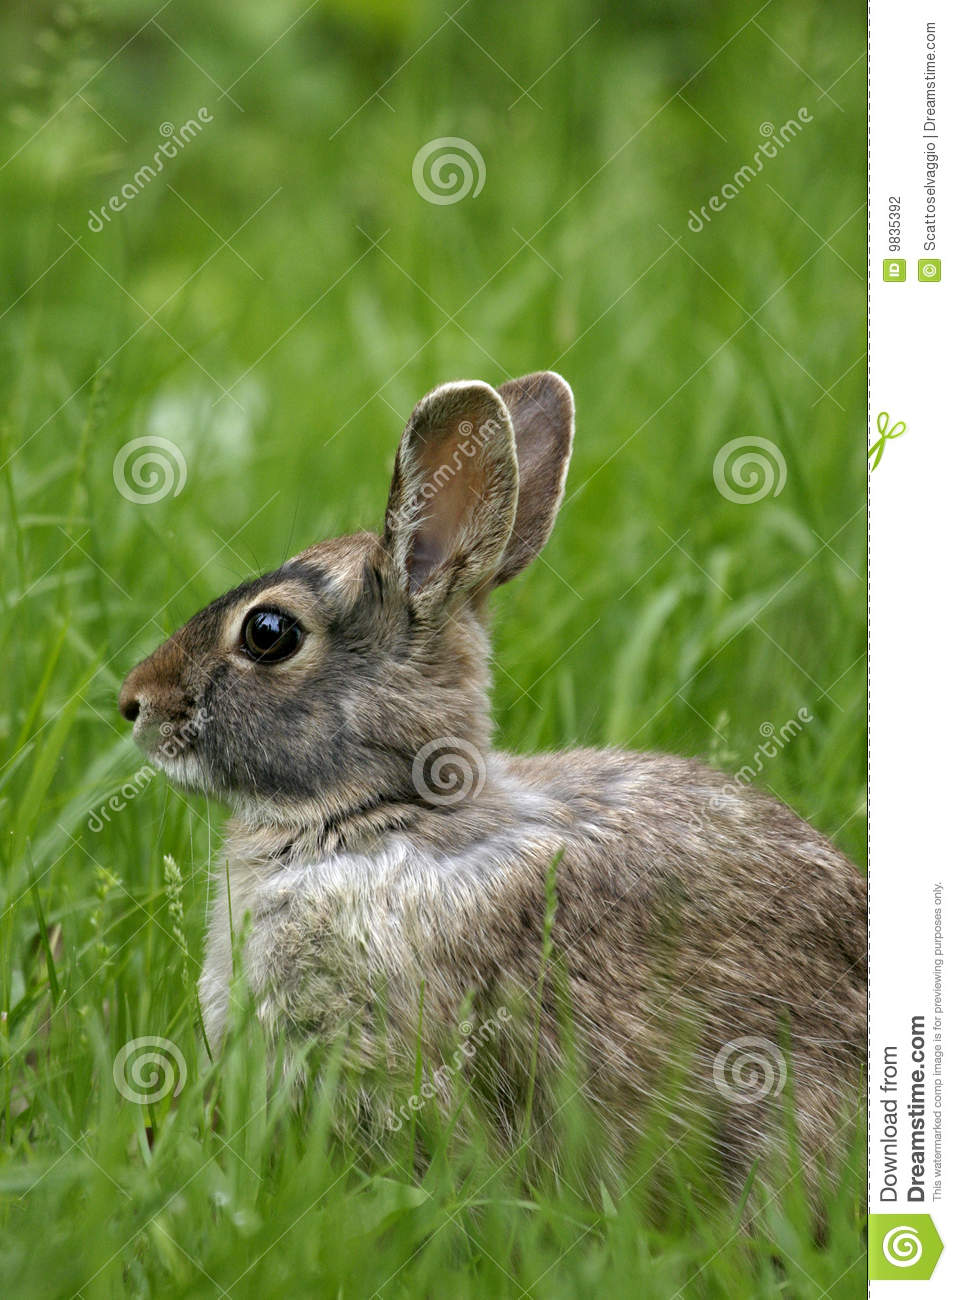 The Eastern Cottontail (Sylvilagus floridanus) in the grass.